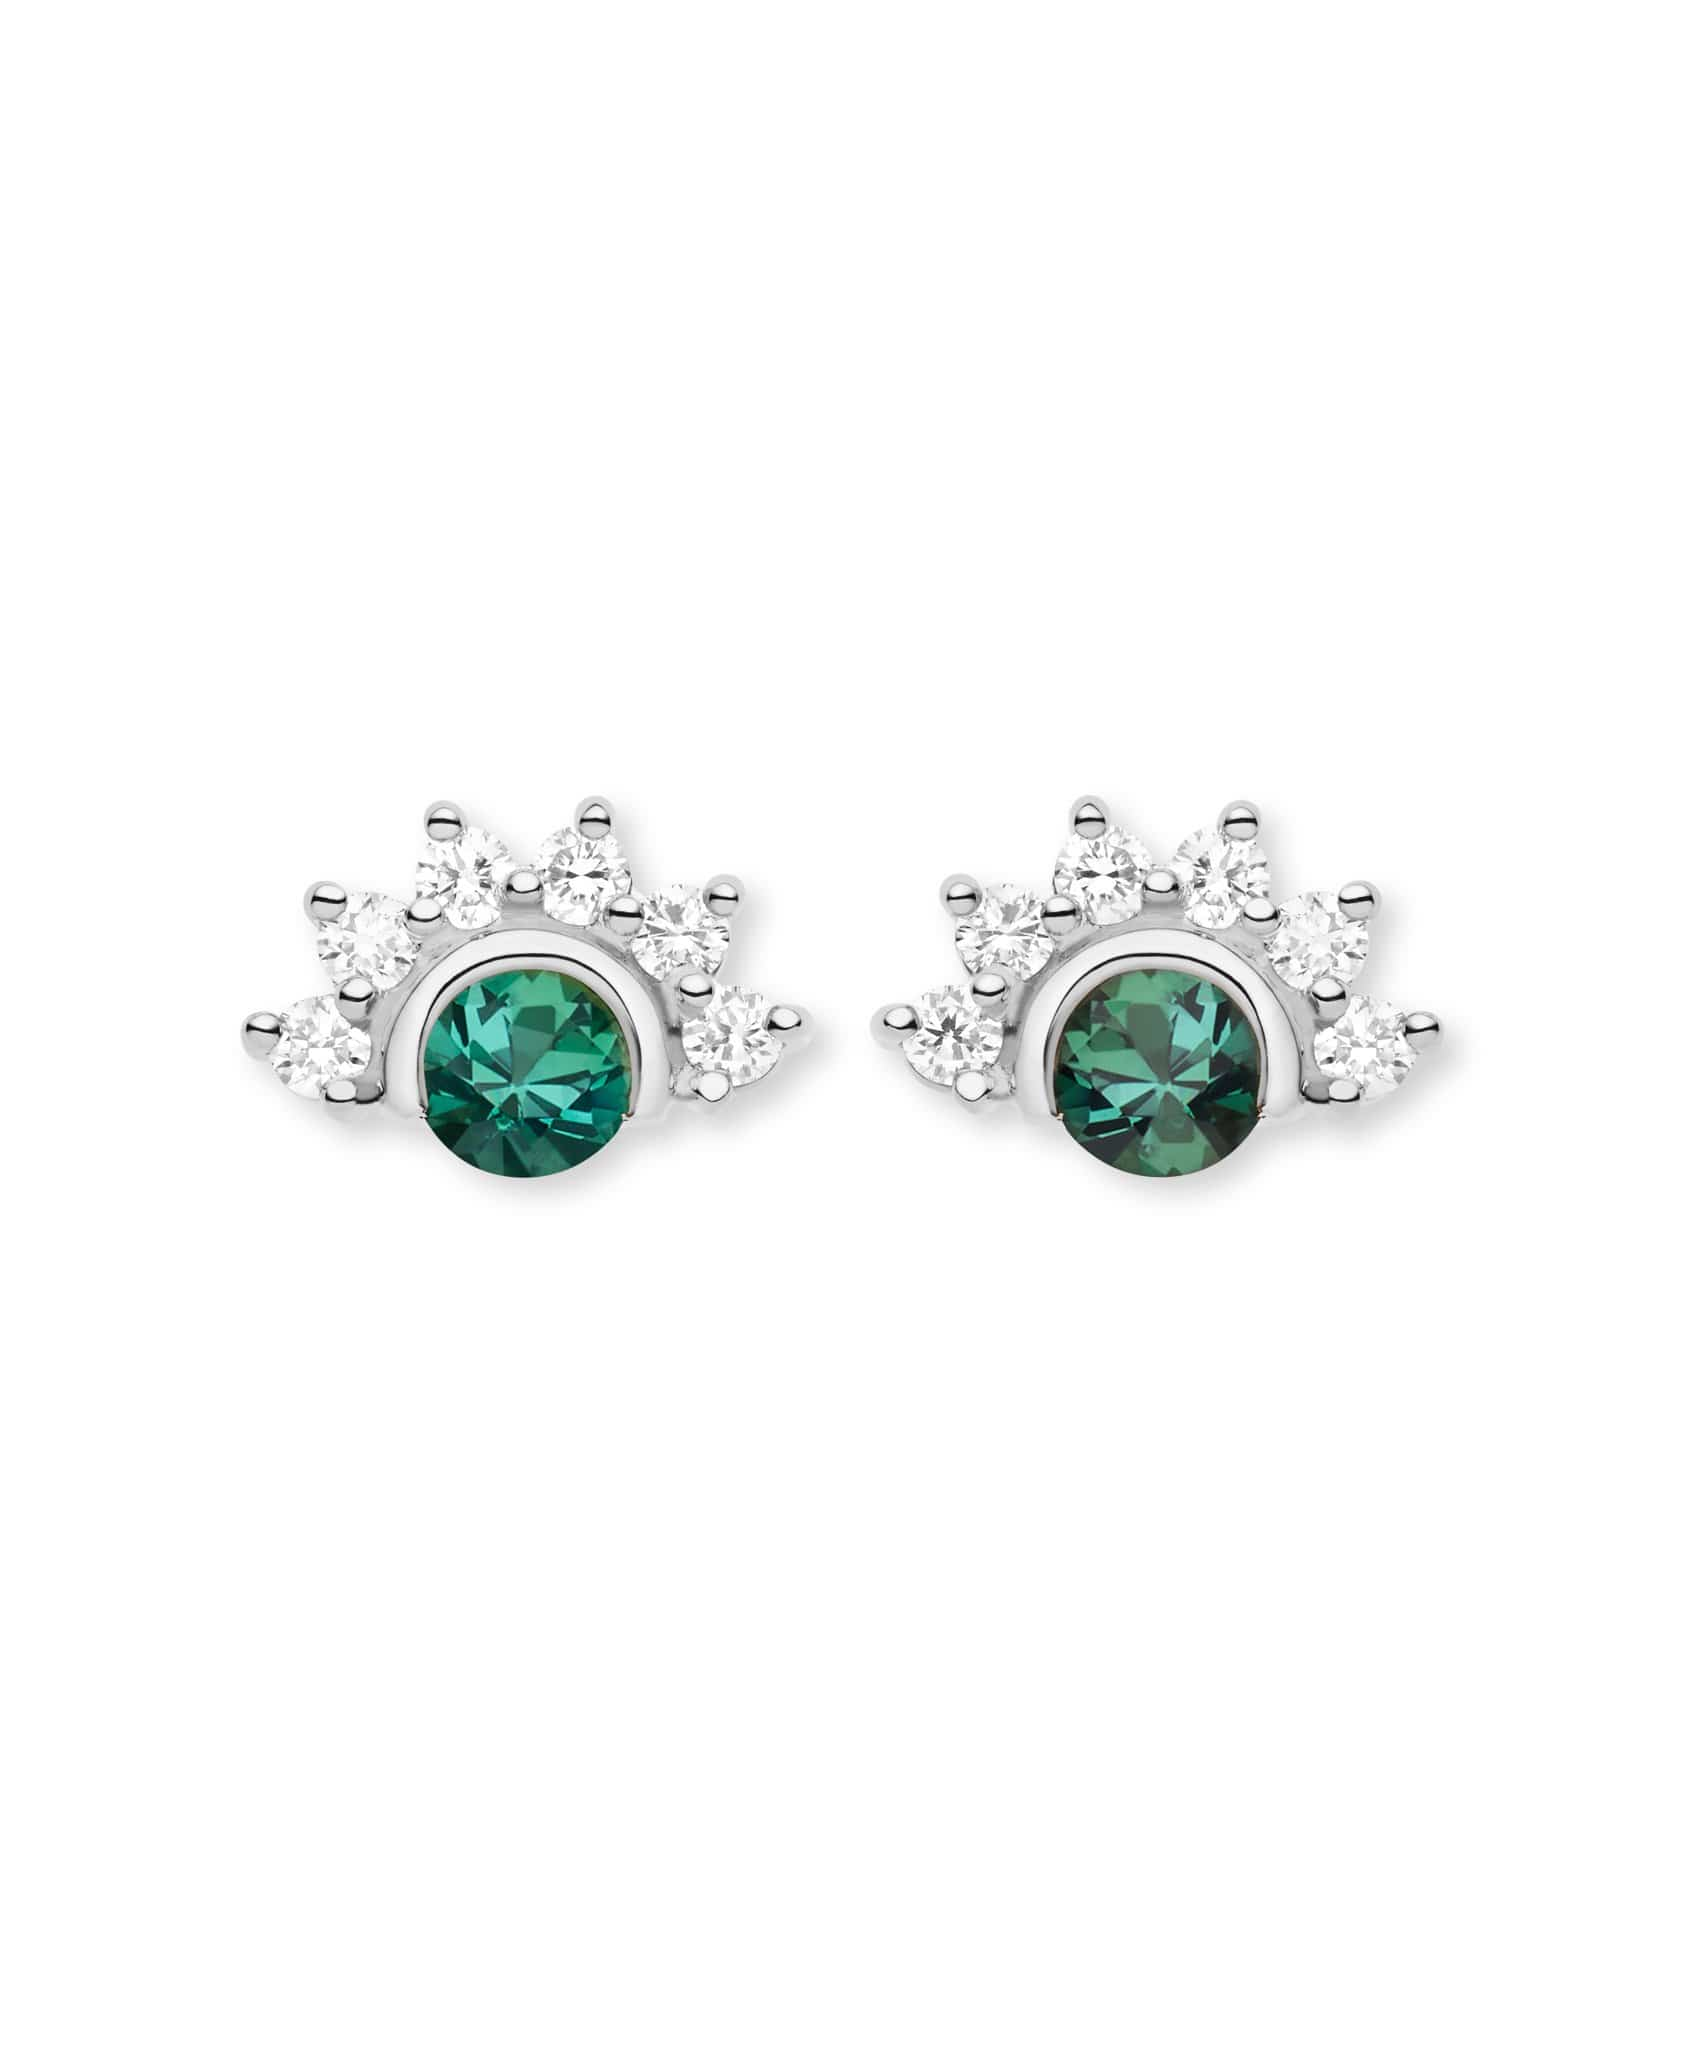 Green Tourmaline Studs: Discover Luxury Fine Jewelry | Nouvel Heritage